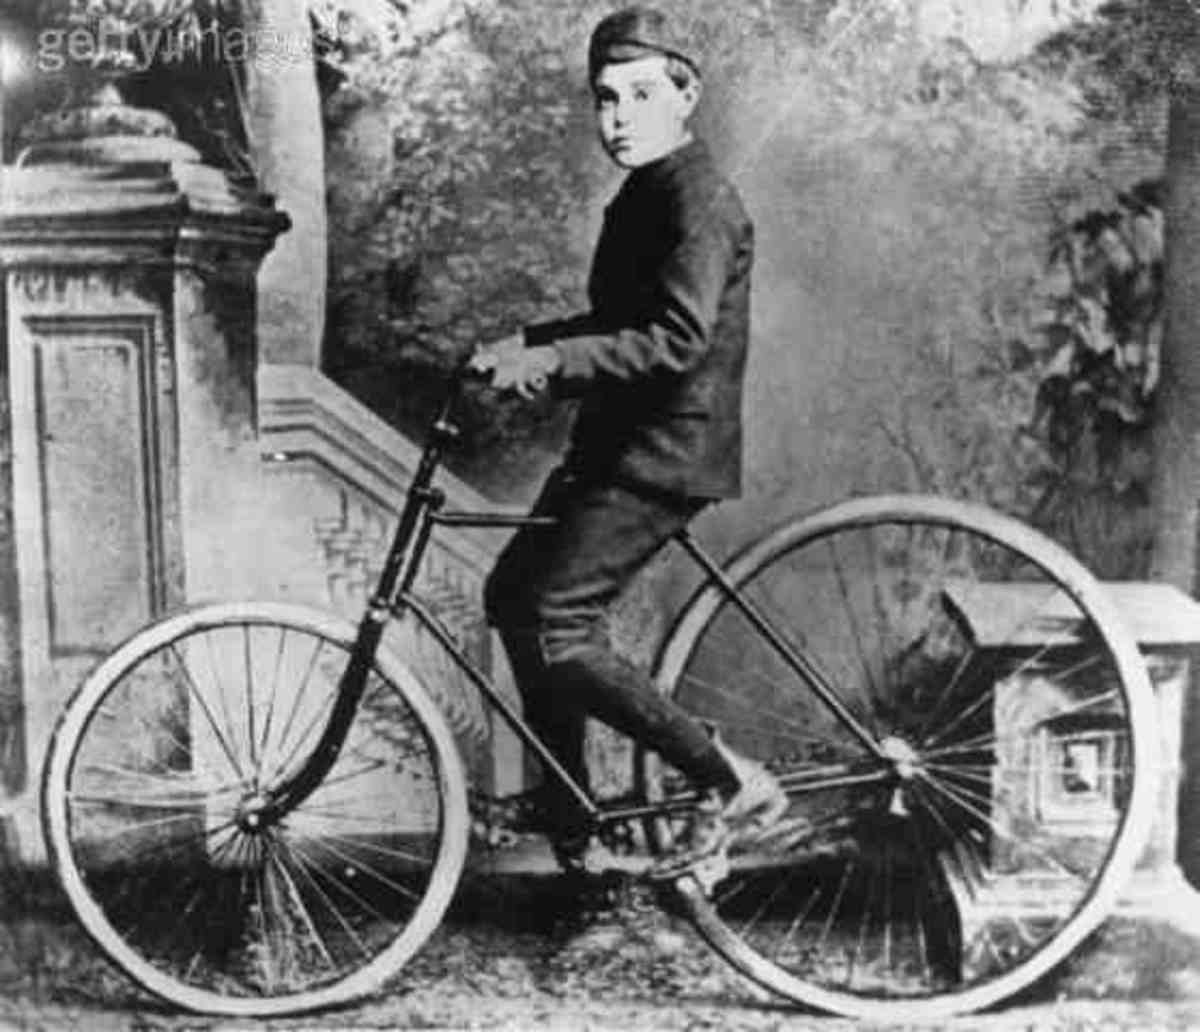 One of the first bikes that were named the velocipede.